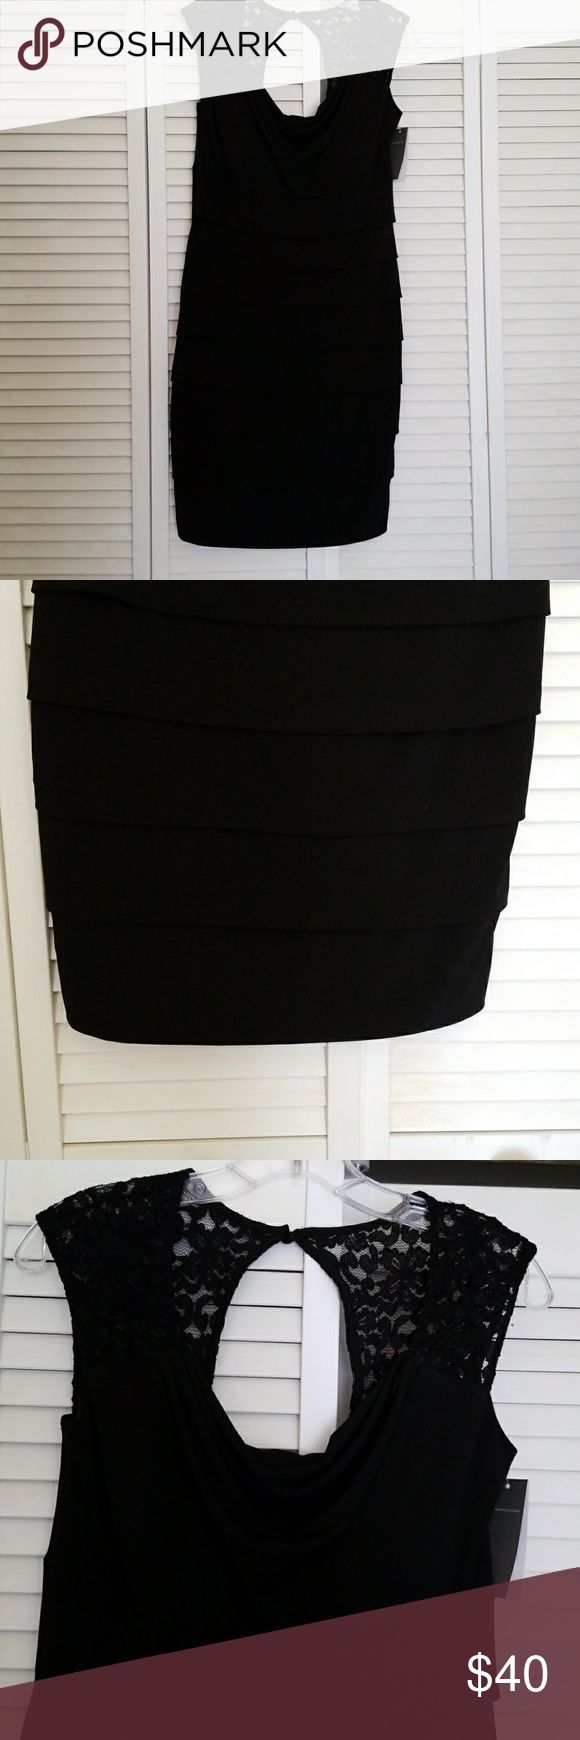 Donna Ricco bandage dress Pretty black bandage dress from Donna Ricco. It has the bandage in the front but not the back. The neckline is trimmed with lace.  The dress measures 37 inches from shoulder to hem and 14 inches from pit to pit. Donna Ricco Dresses Midi